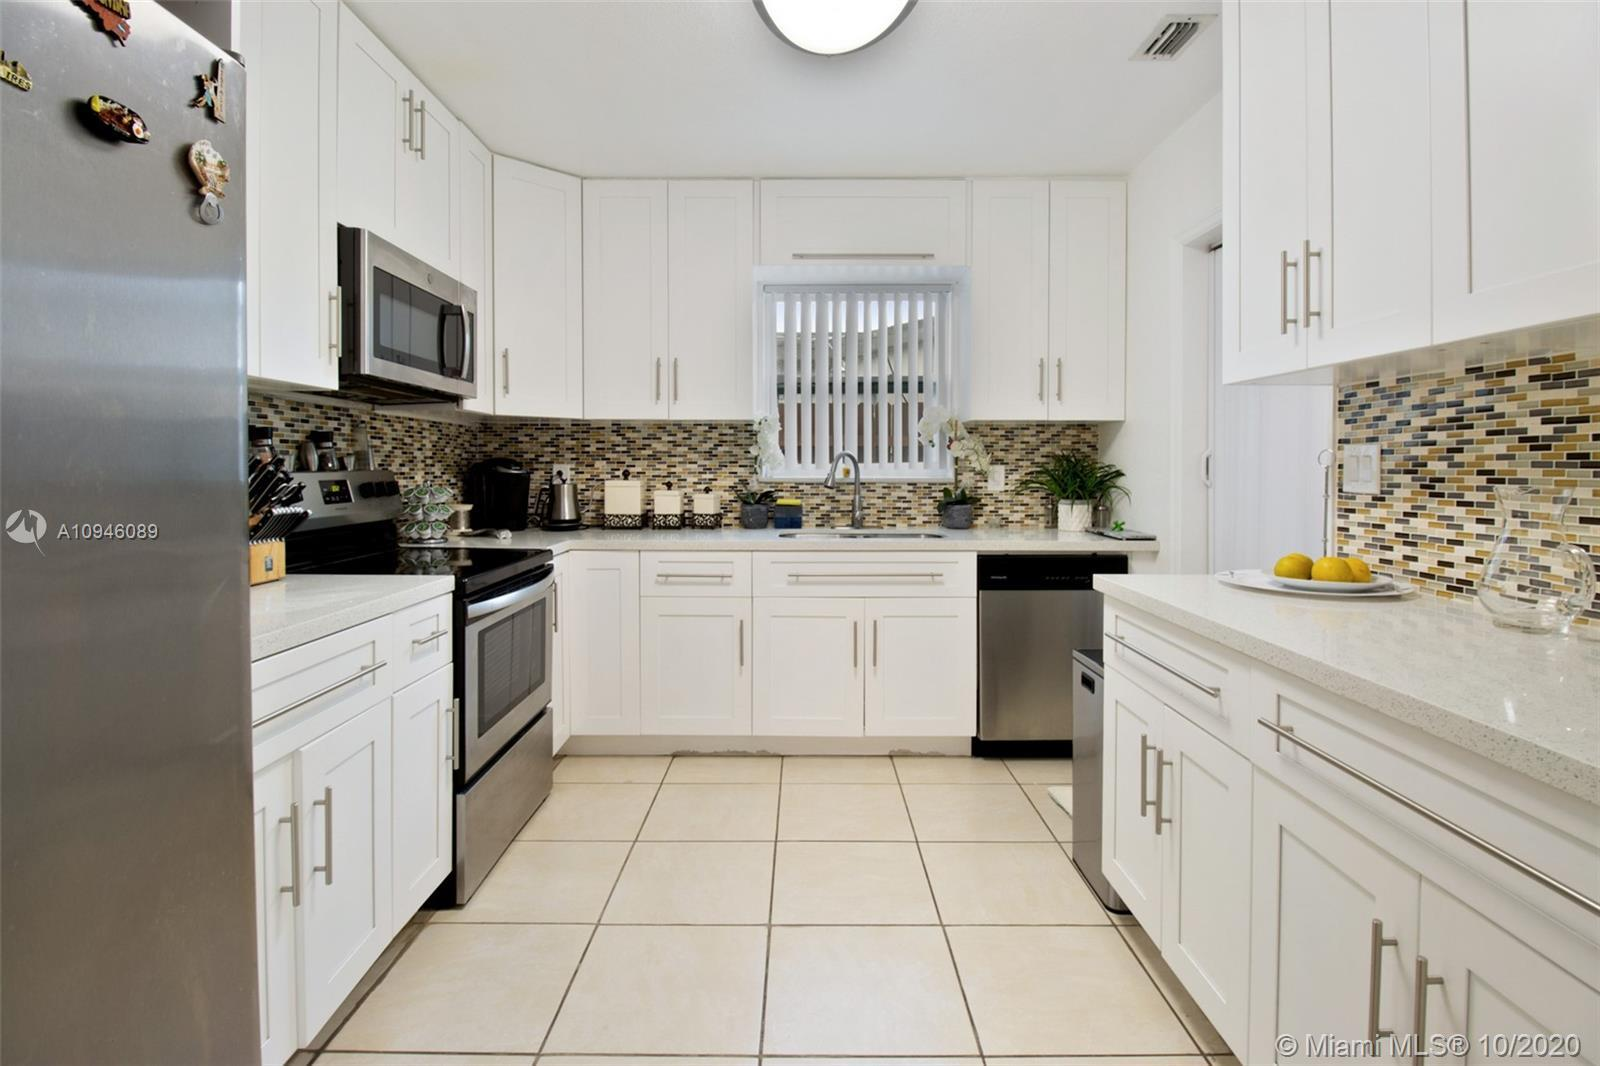 Beautifully remodeled 3/1 home in the heart of Hollywood minutes away from the famous guitar hotel H